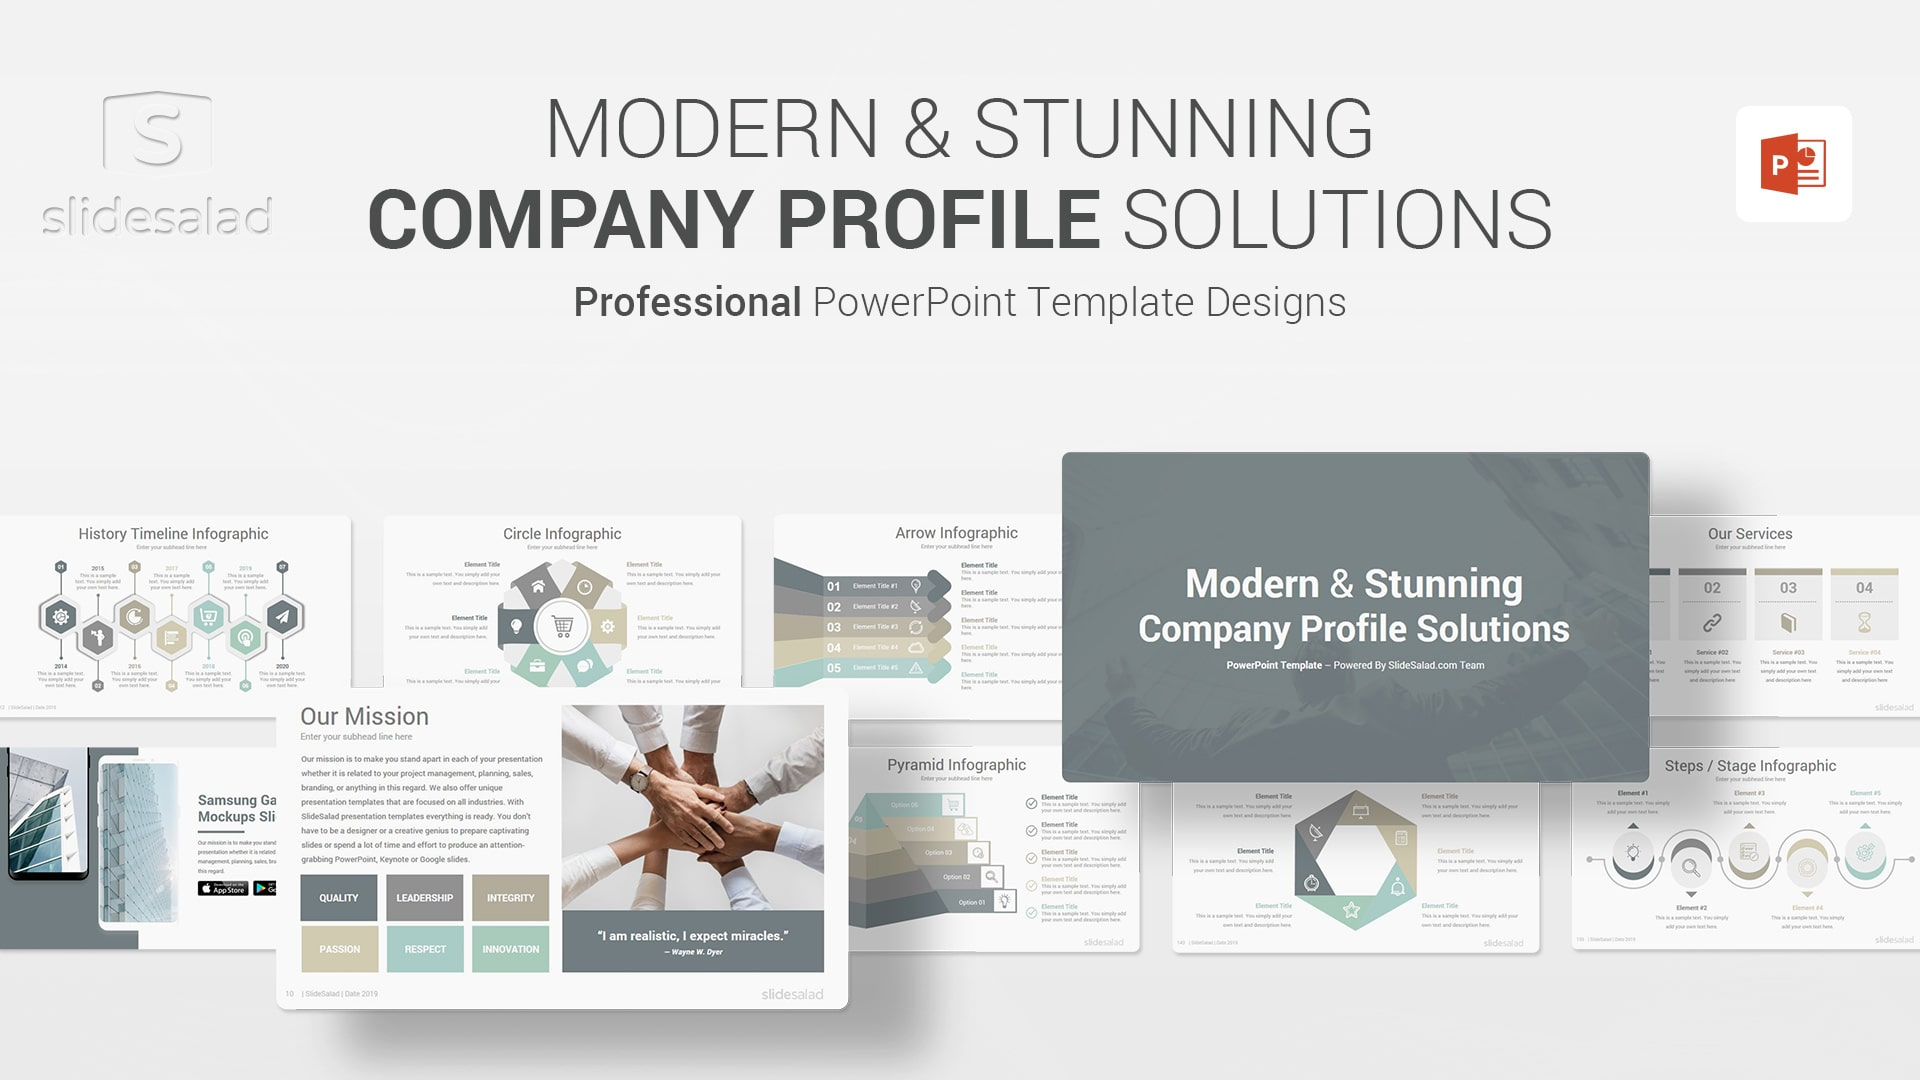 Modern Company Profile PowerPoint Template Designs - Colorful PowerPoint Webinar Layouts